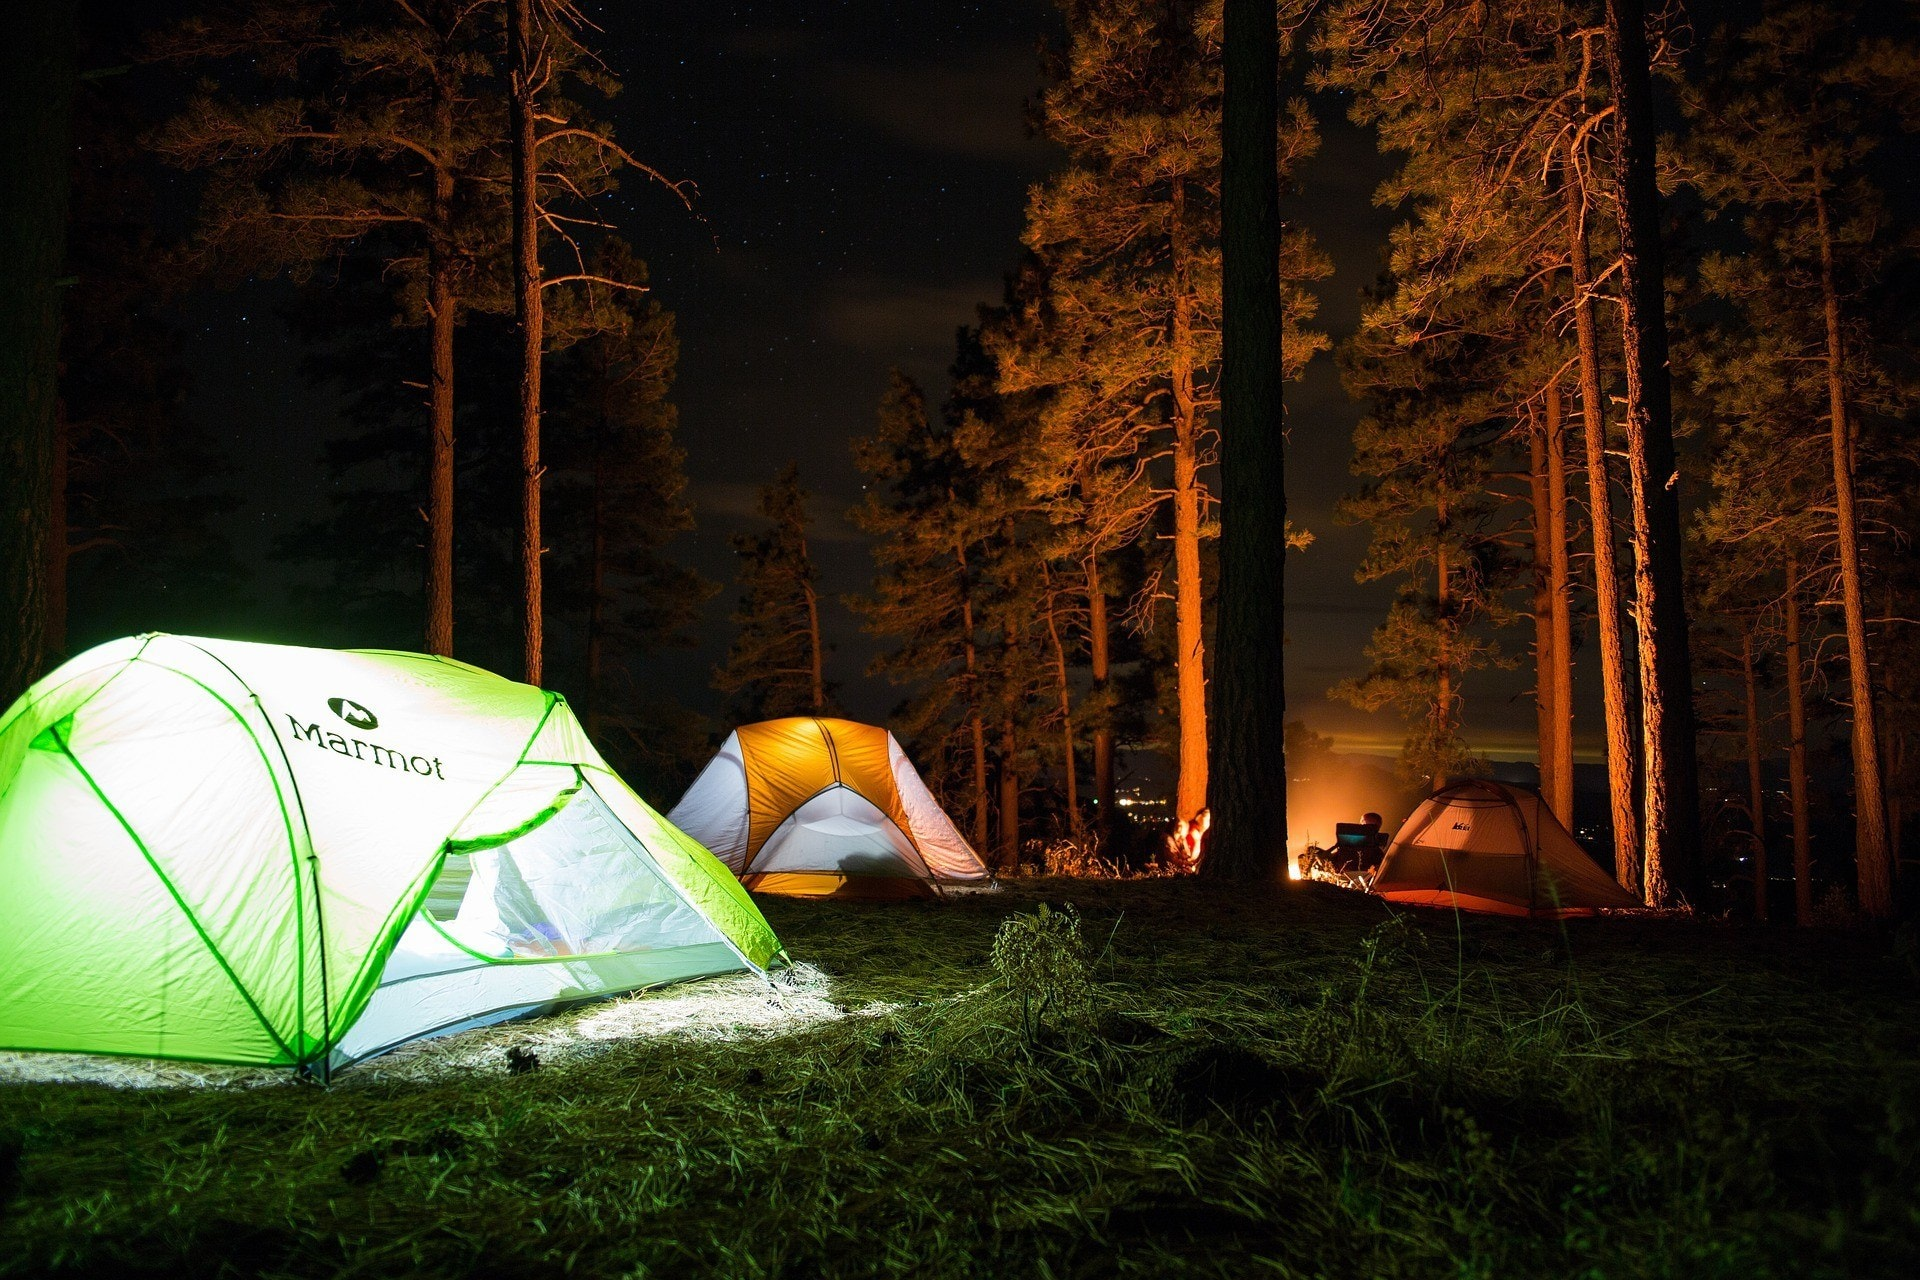 Best 4 Person Tent For Camping and Backpacking - The Wandering Queen